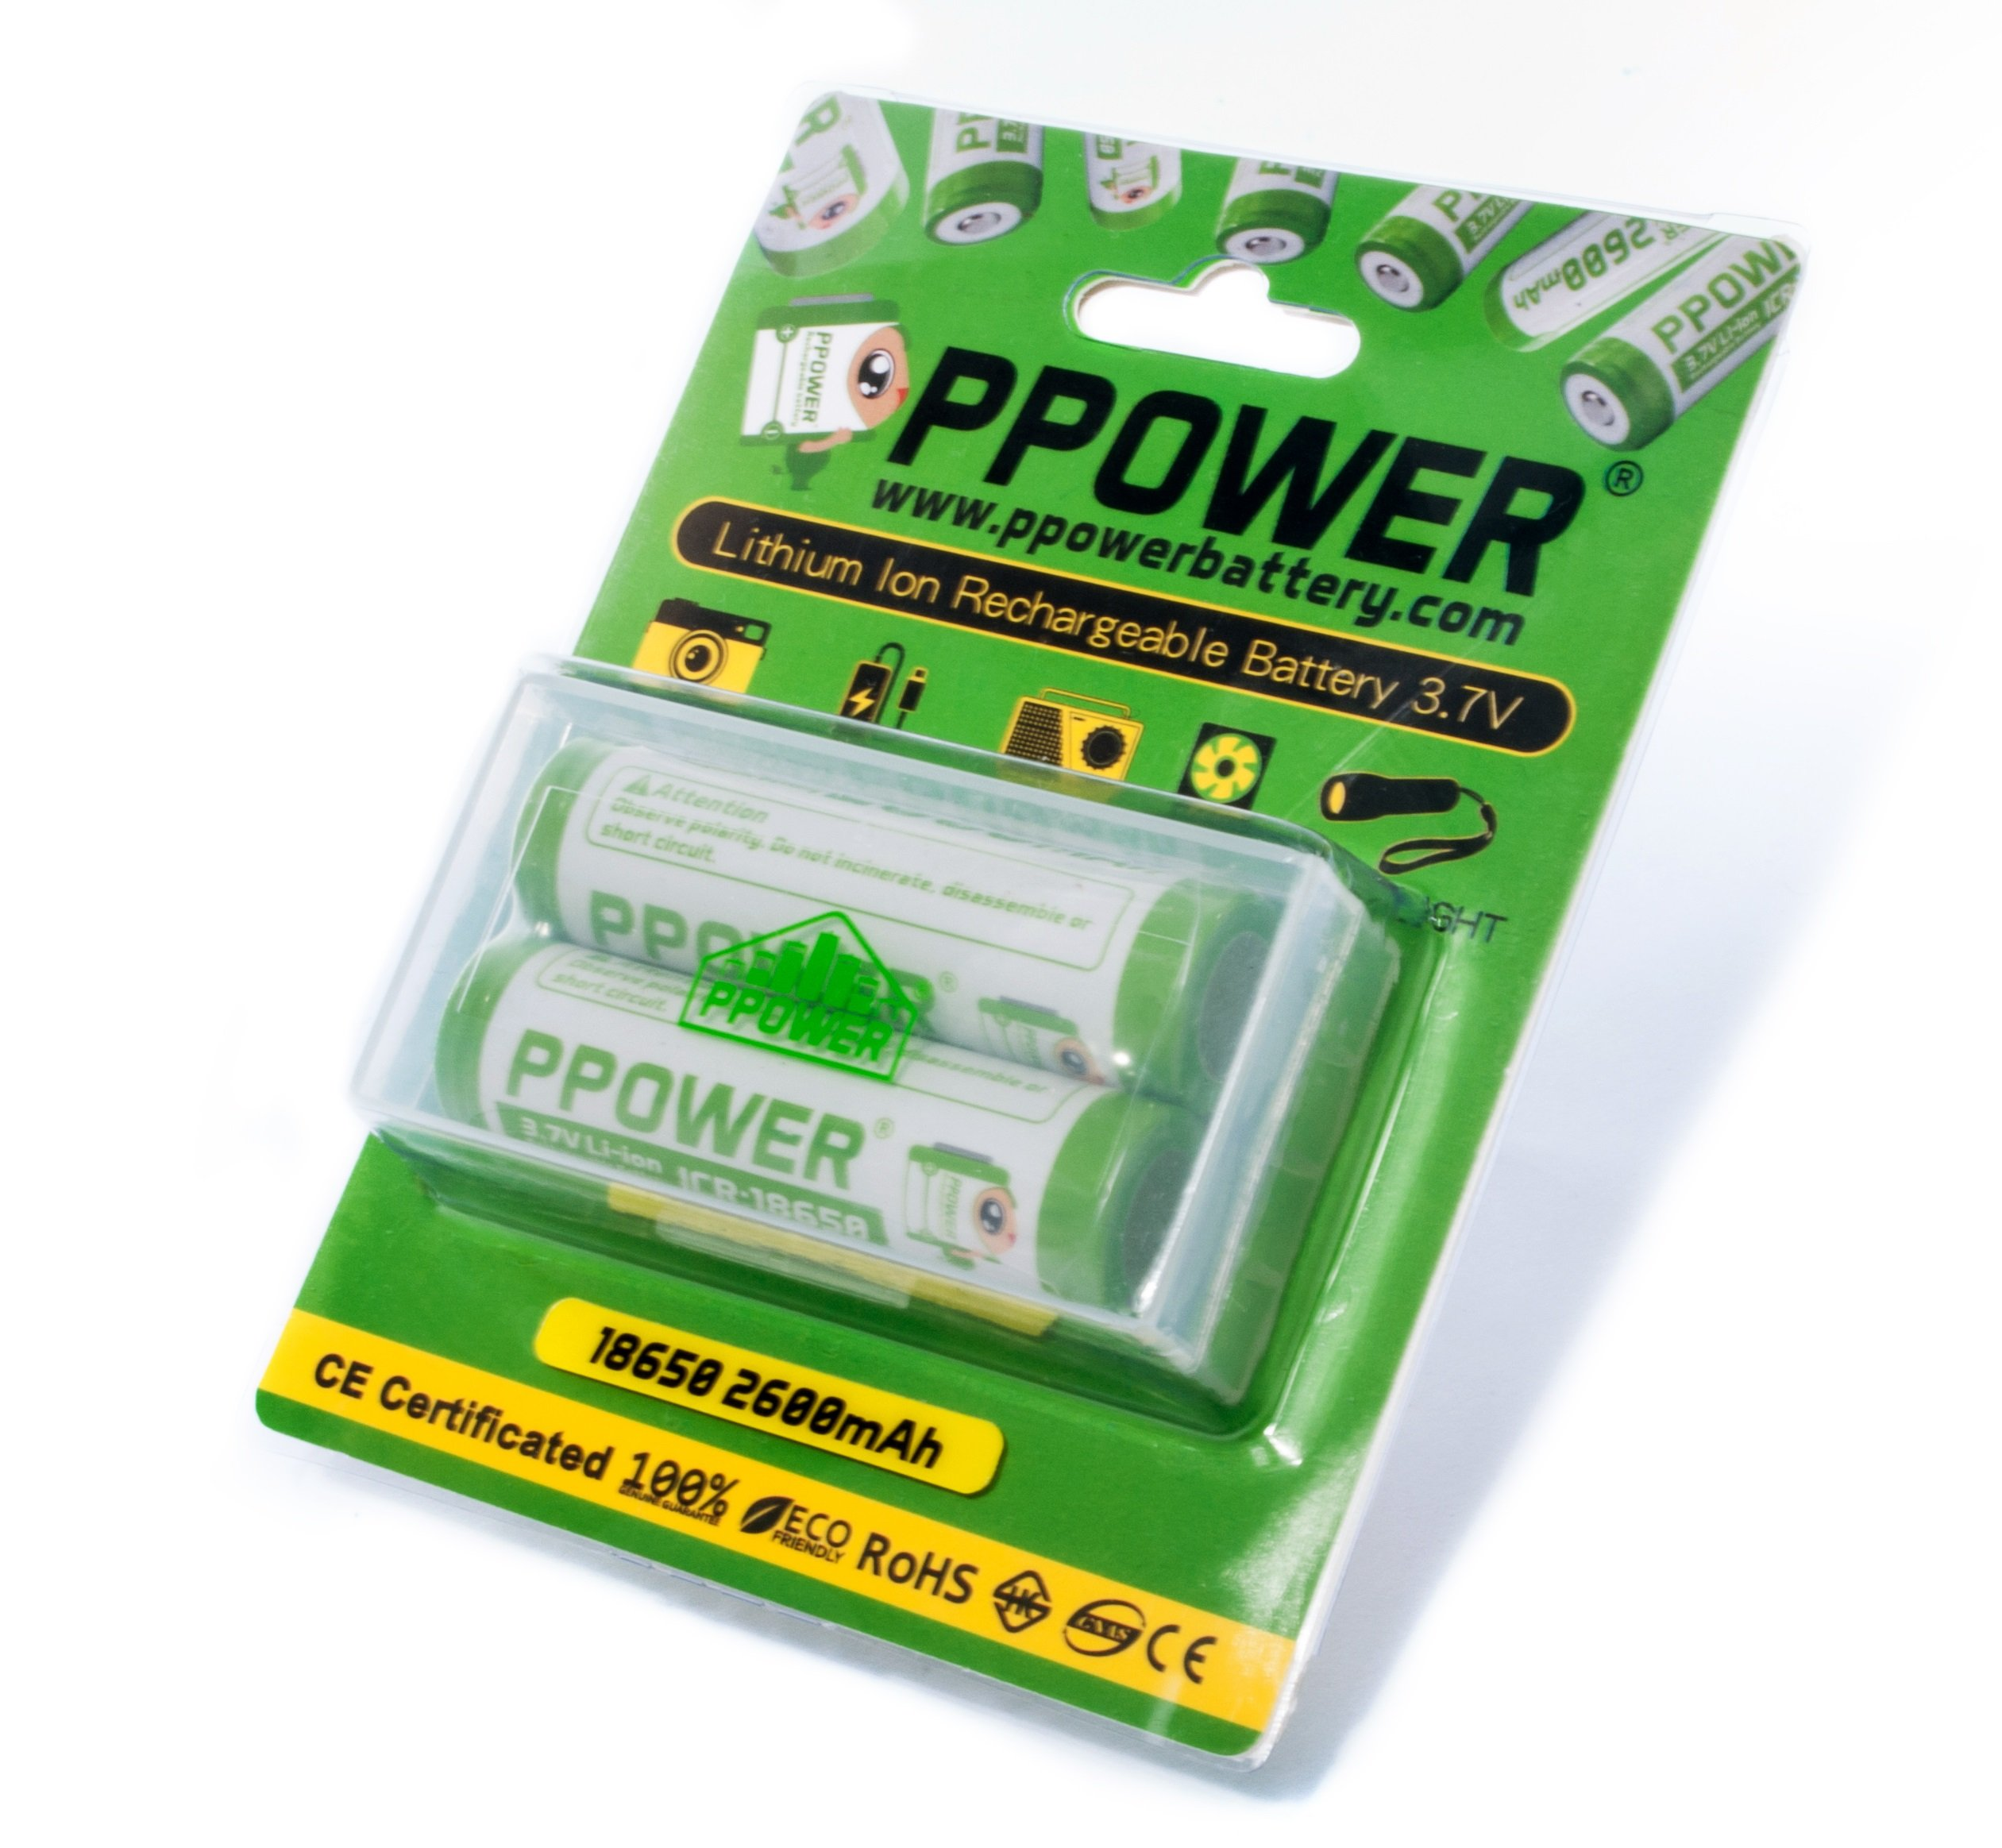 2 X Ppower 18650 3.7V 2600mAh Lithium Ion Rechargeable Batteries (CE/UL/IEC62133 Certified) for Flashlight, Portable fan, Microphones and More